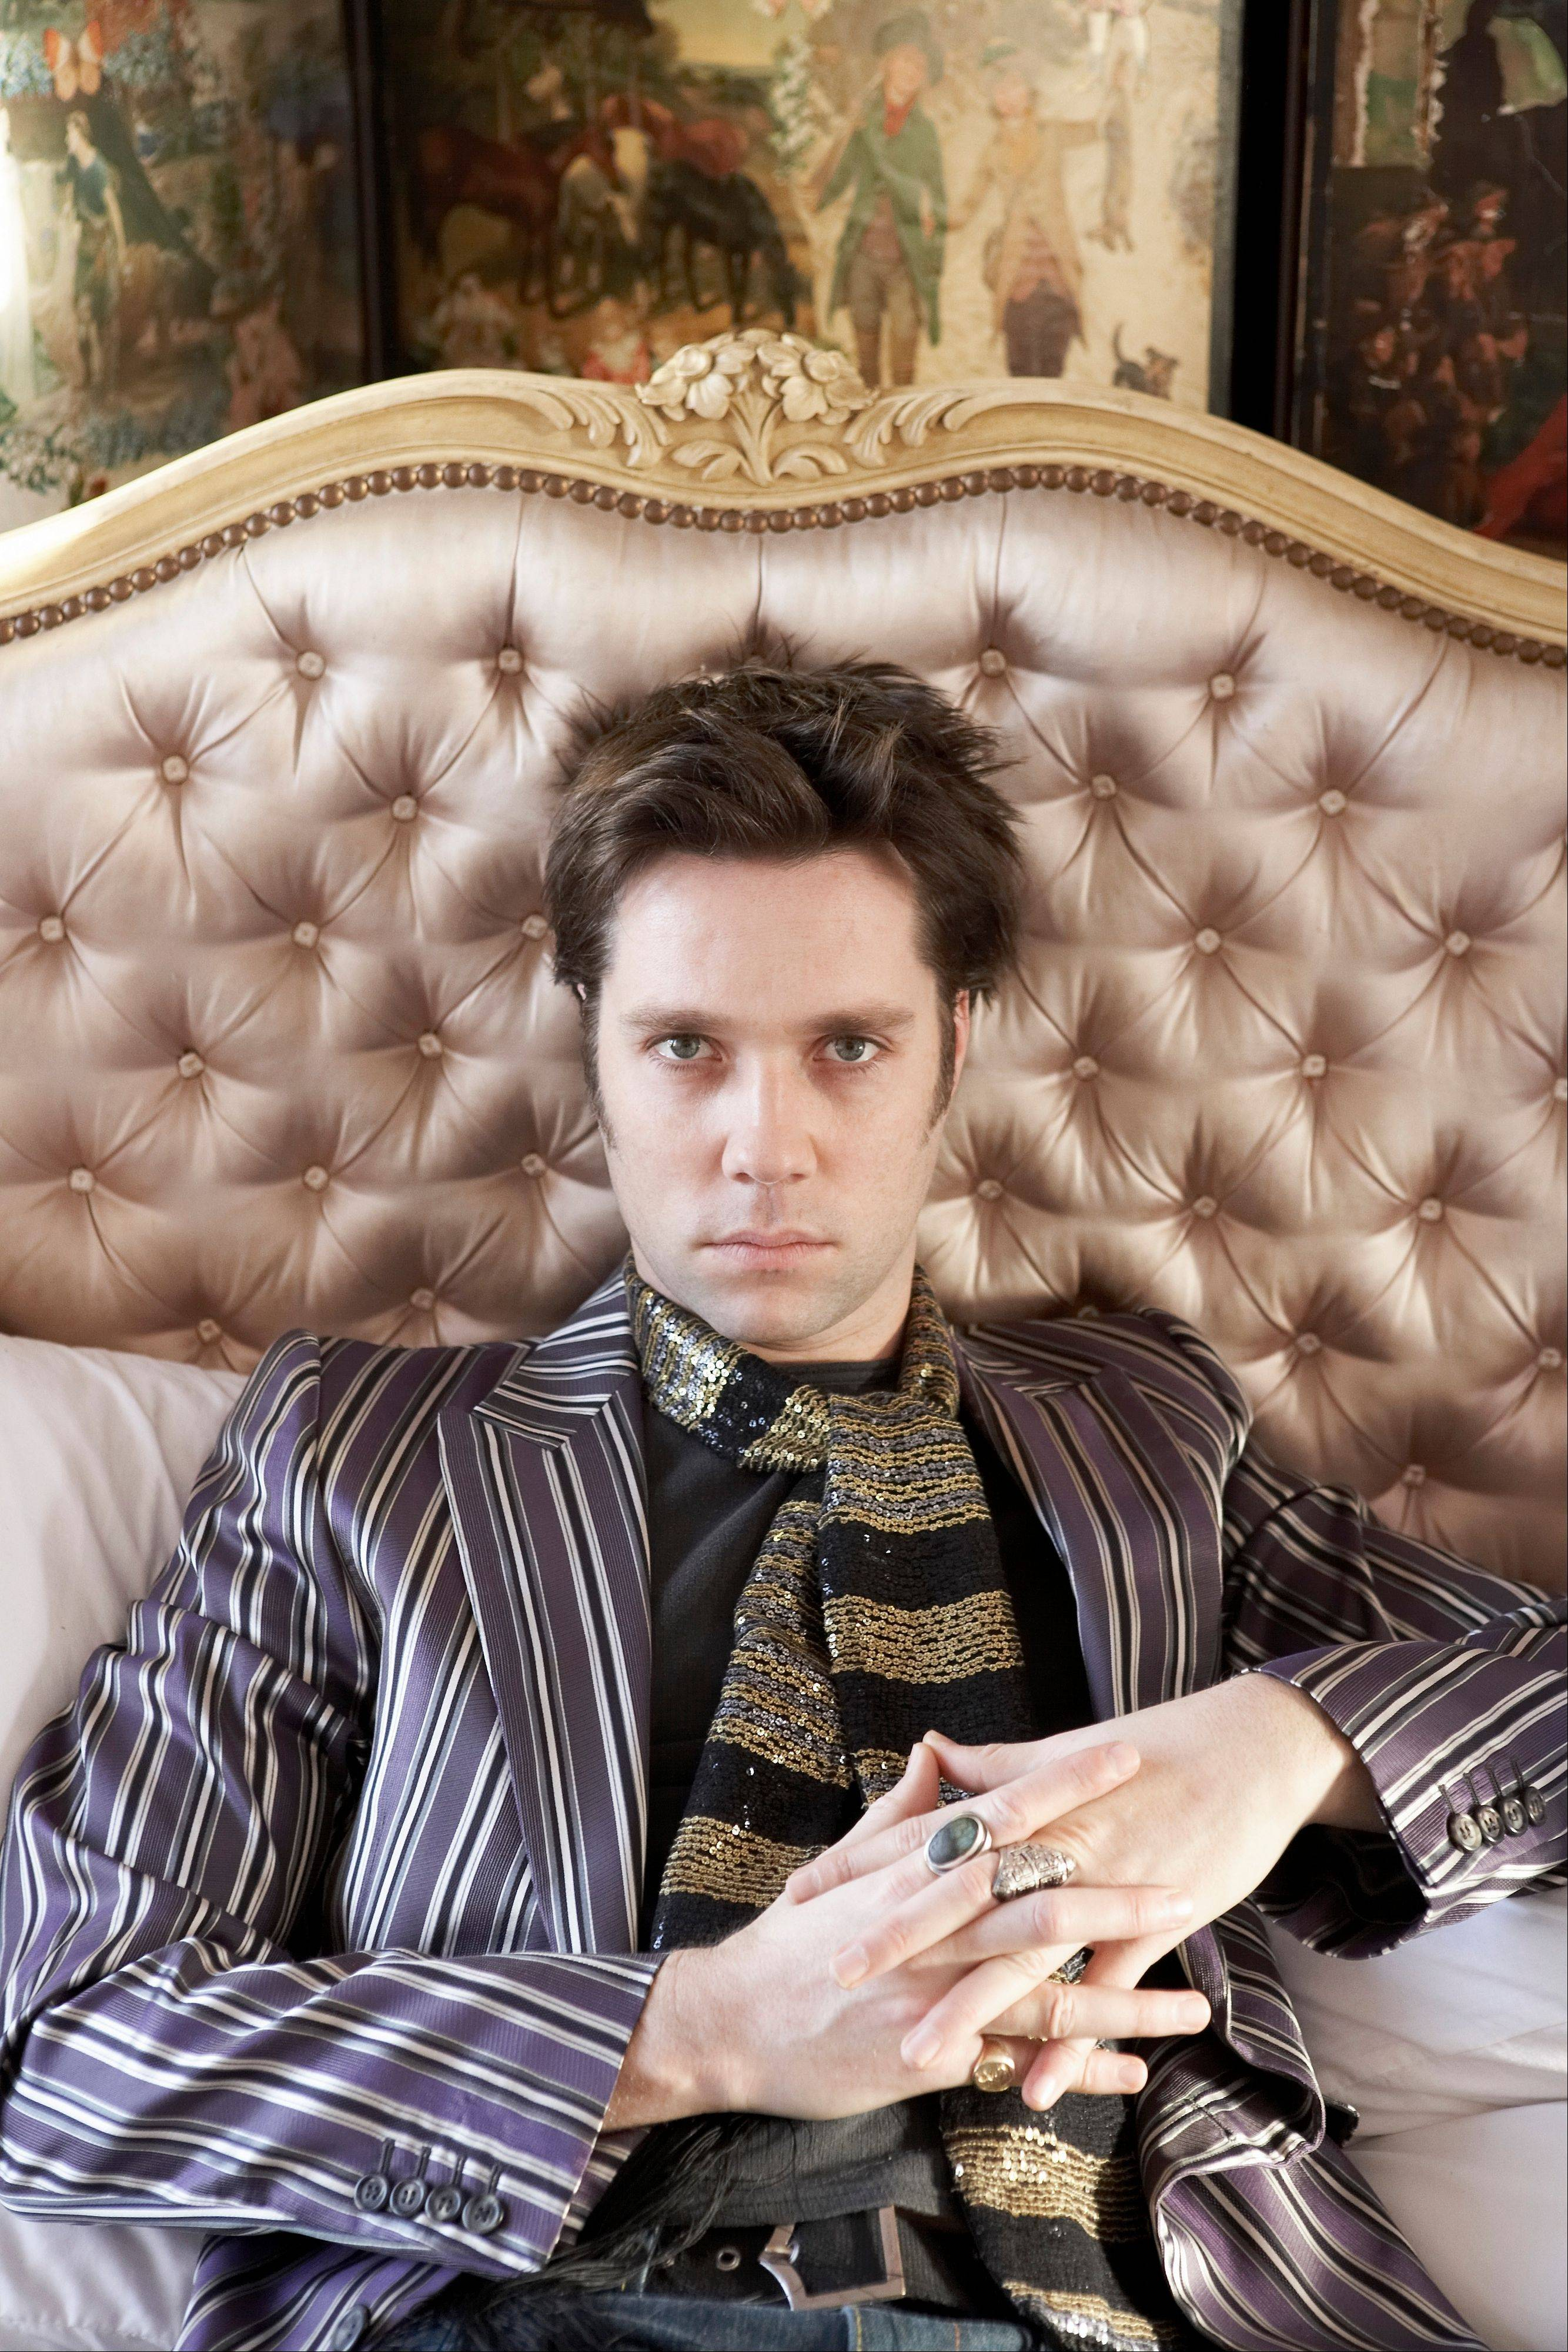 Singer-songwriter Rufus Wainwright is set to perform with the Chicago Symphony Orchestra at the Ravinia Festival in Highland Park on Sunday, Aug. 14.